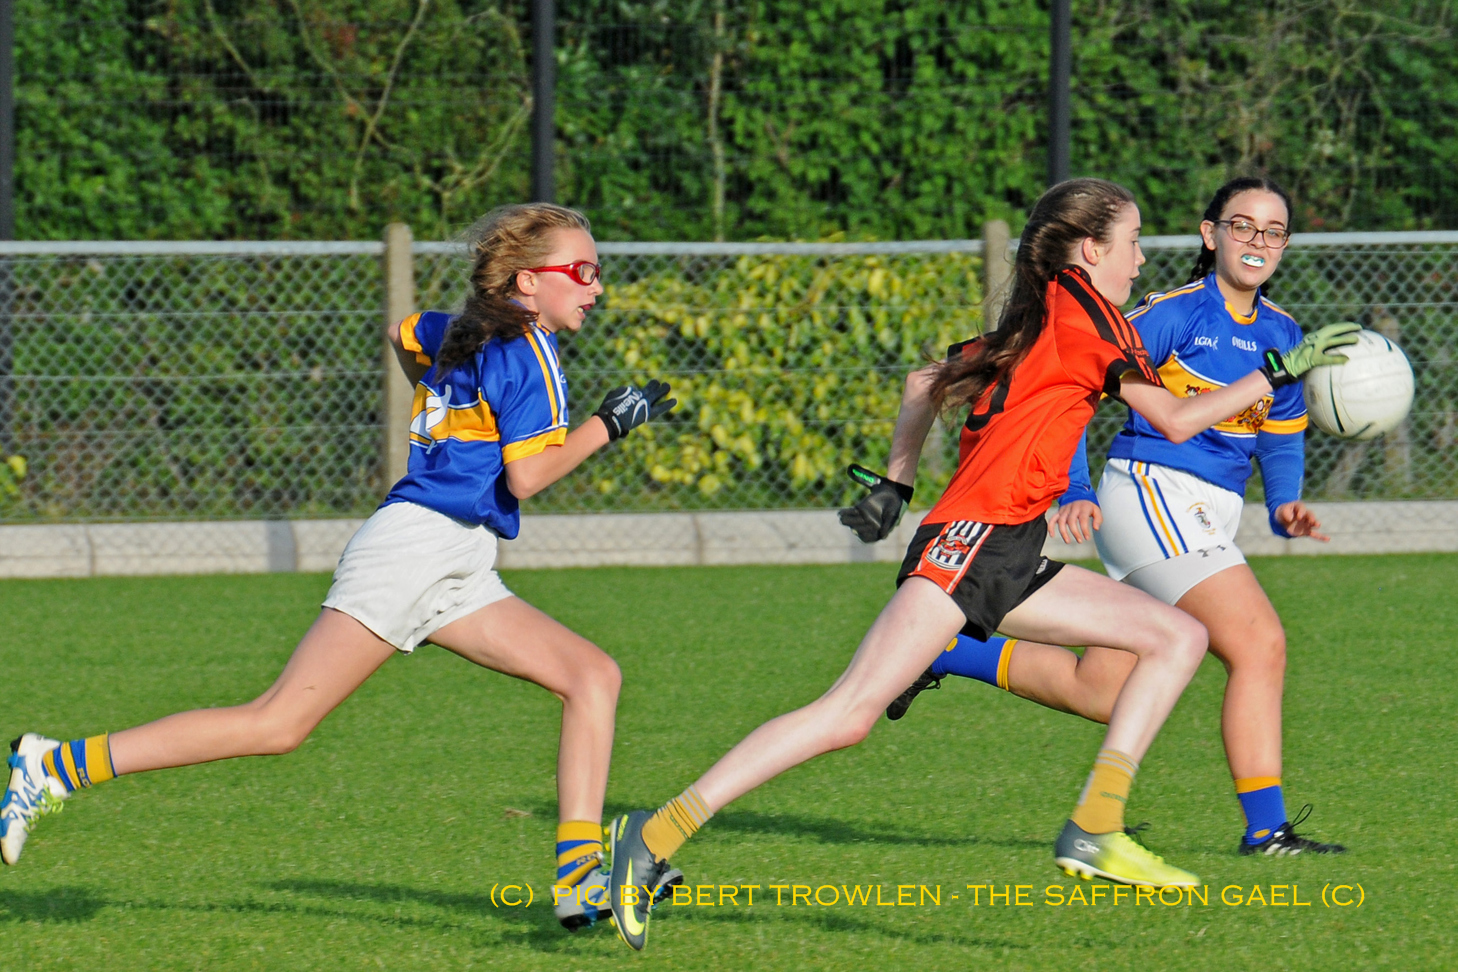 Action from Glenavy U16's win over Rossa in the All County Girls Football League game at Chapel Hill. Pic by Bert Trowlen